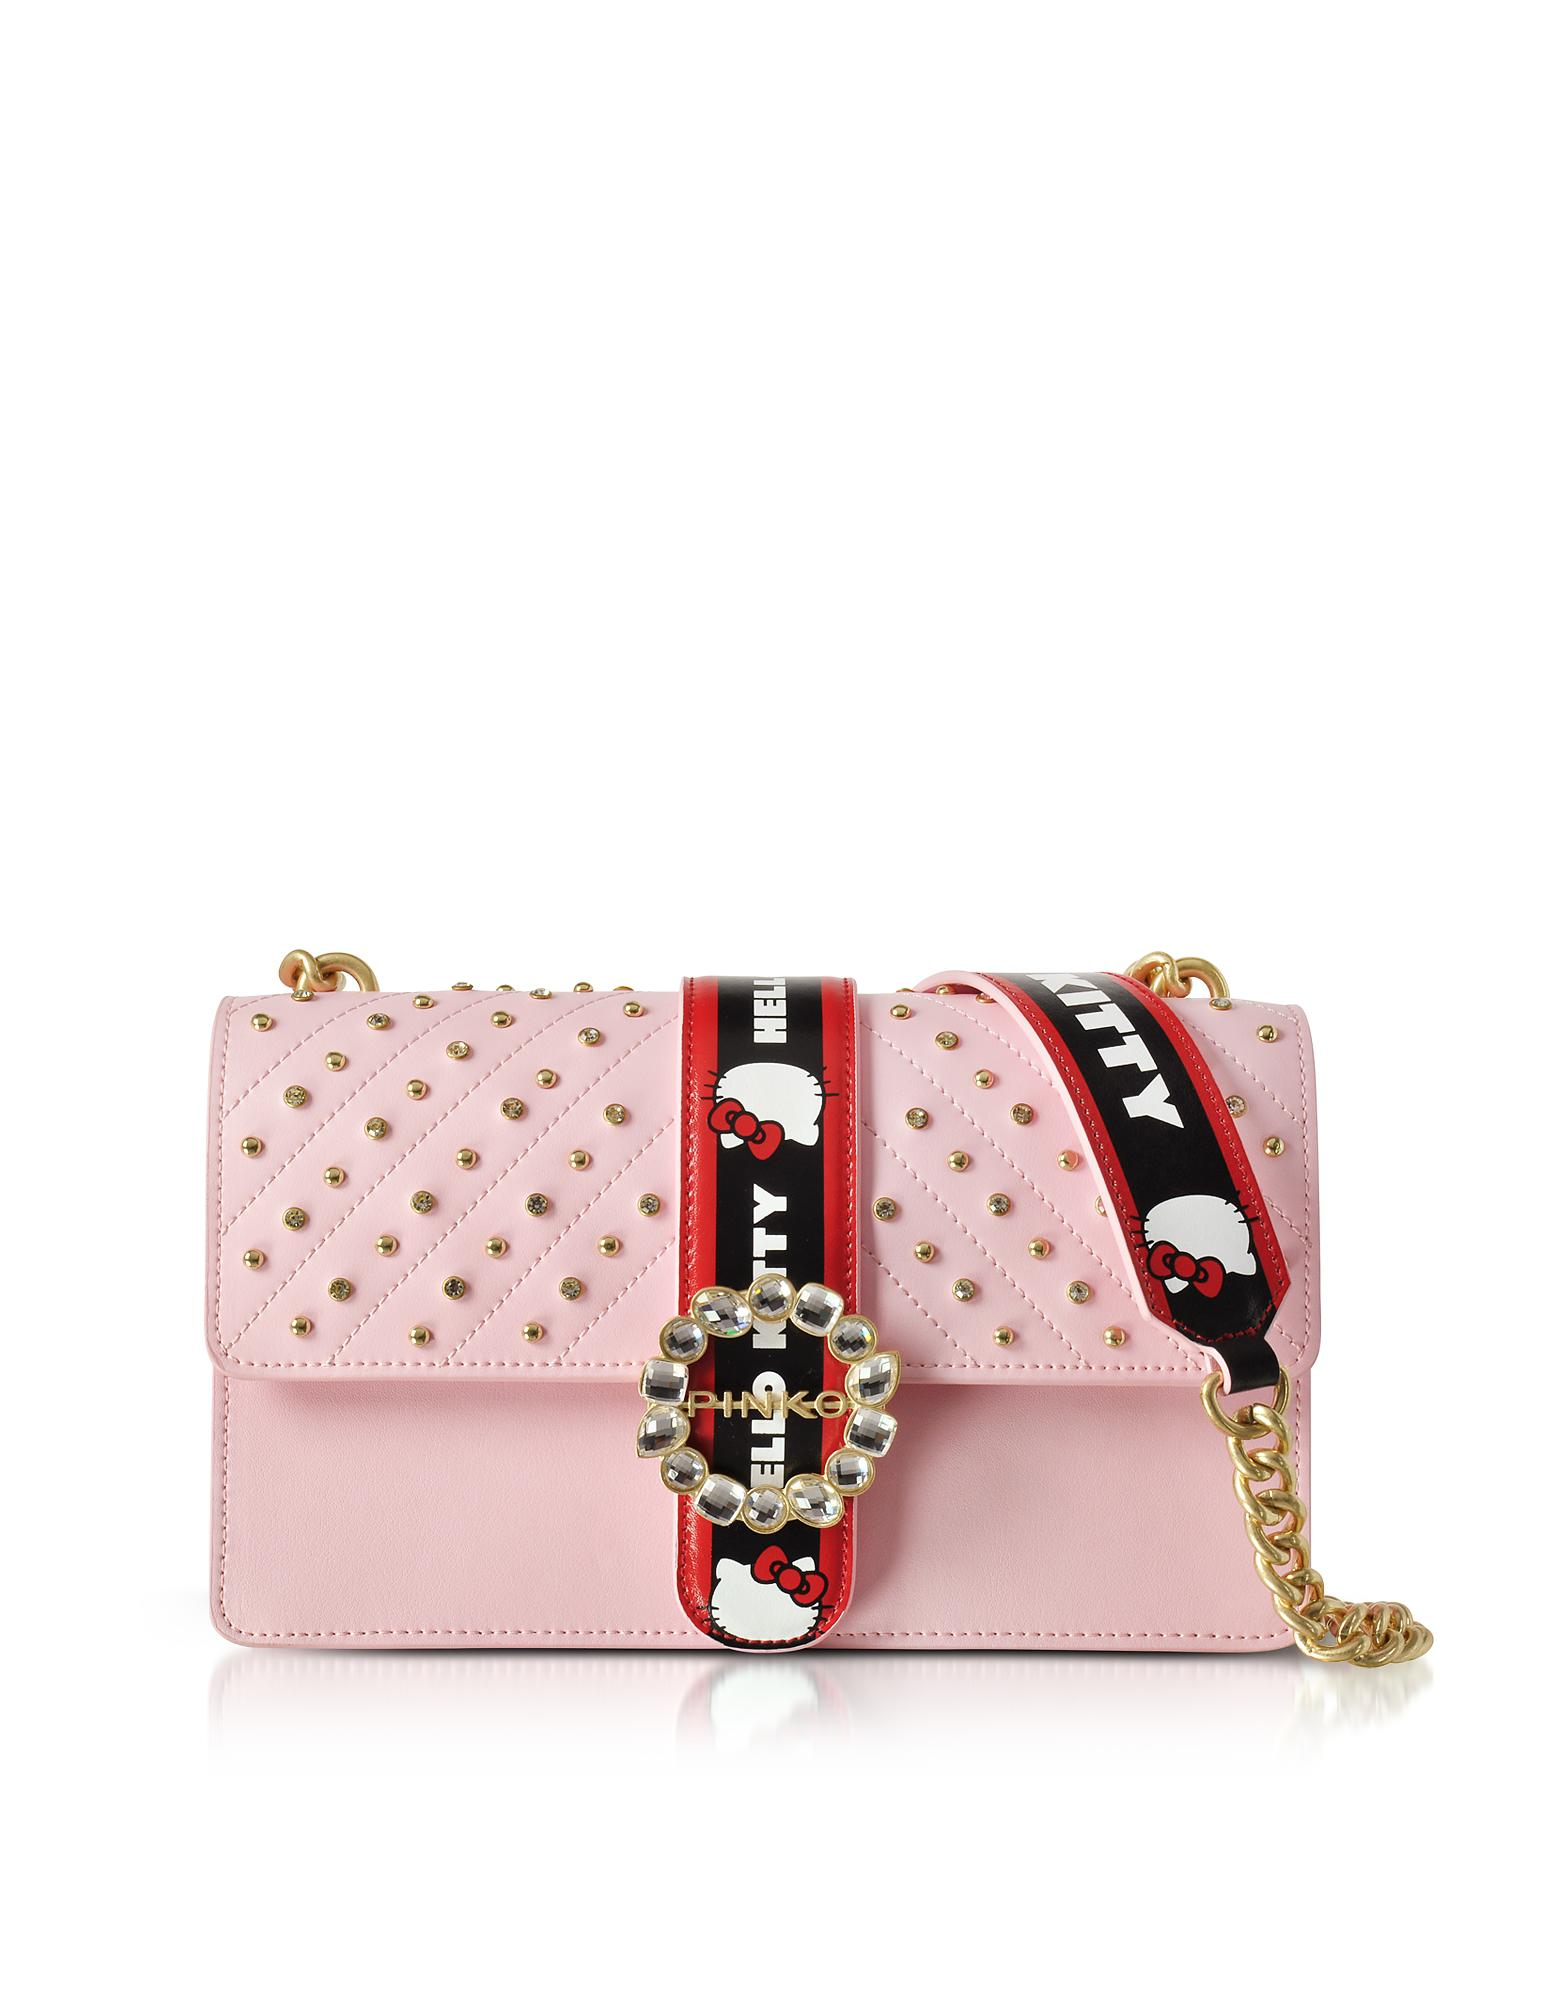 Pink Hello Kitty Jewel bag Pinko Buy Online Outlet New Styles Outlet Newest Free Shipping Latest RVn0LGkmU